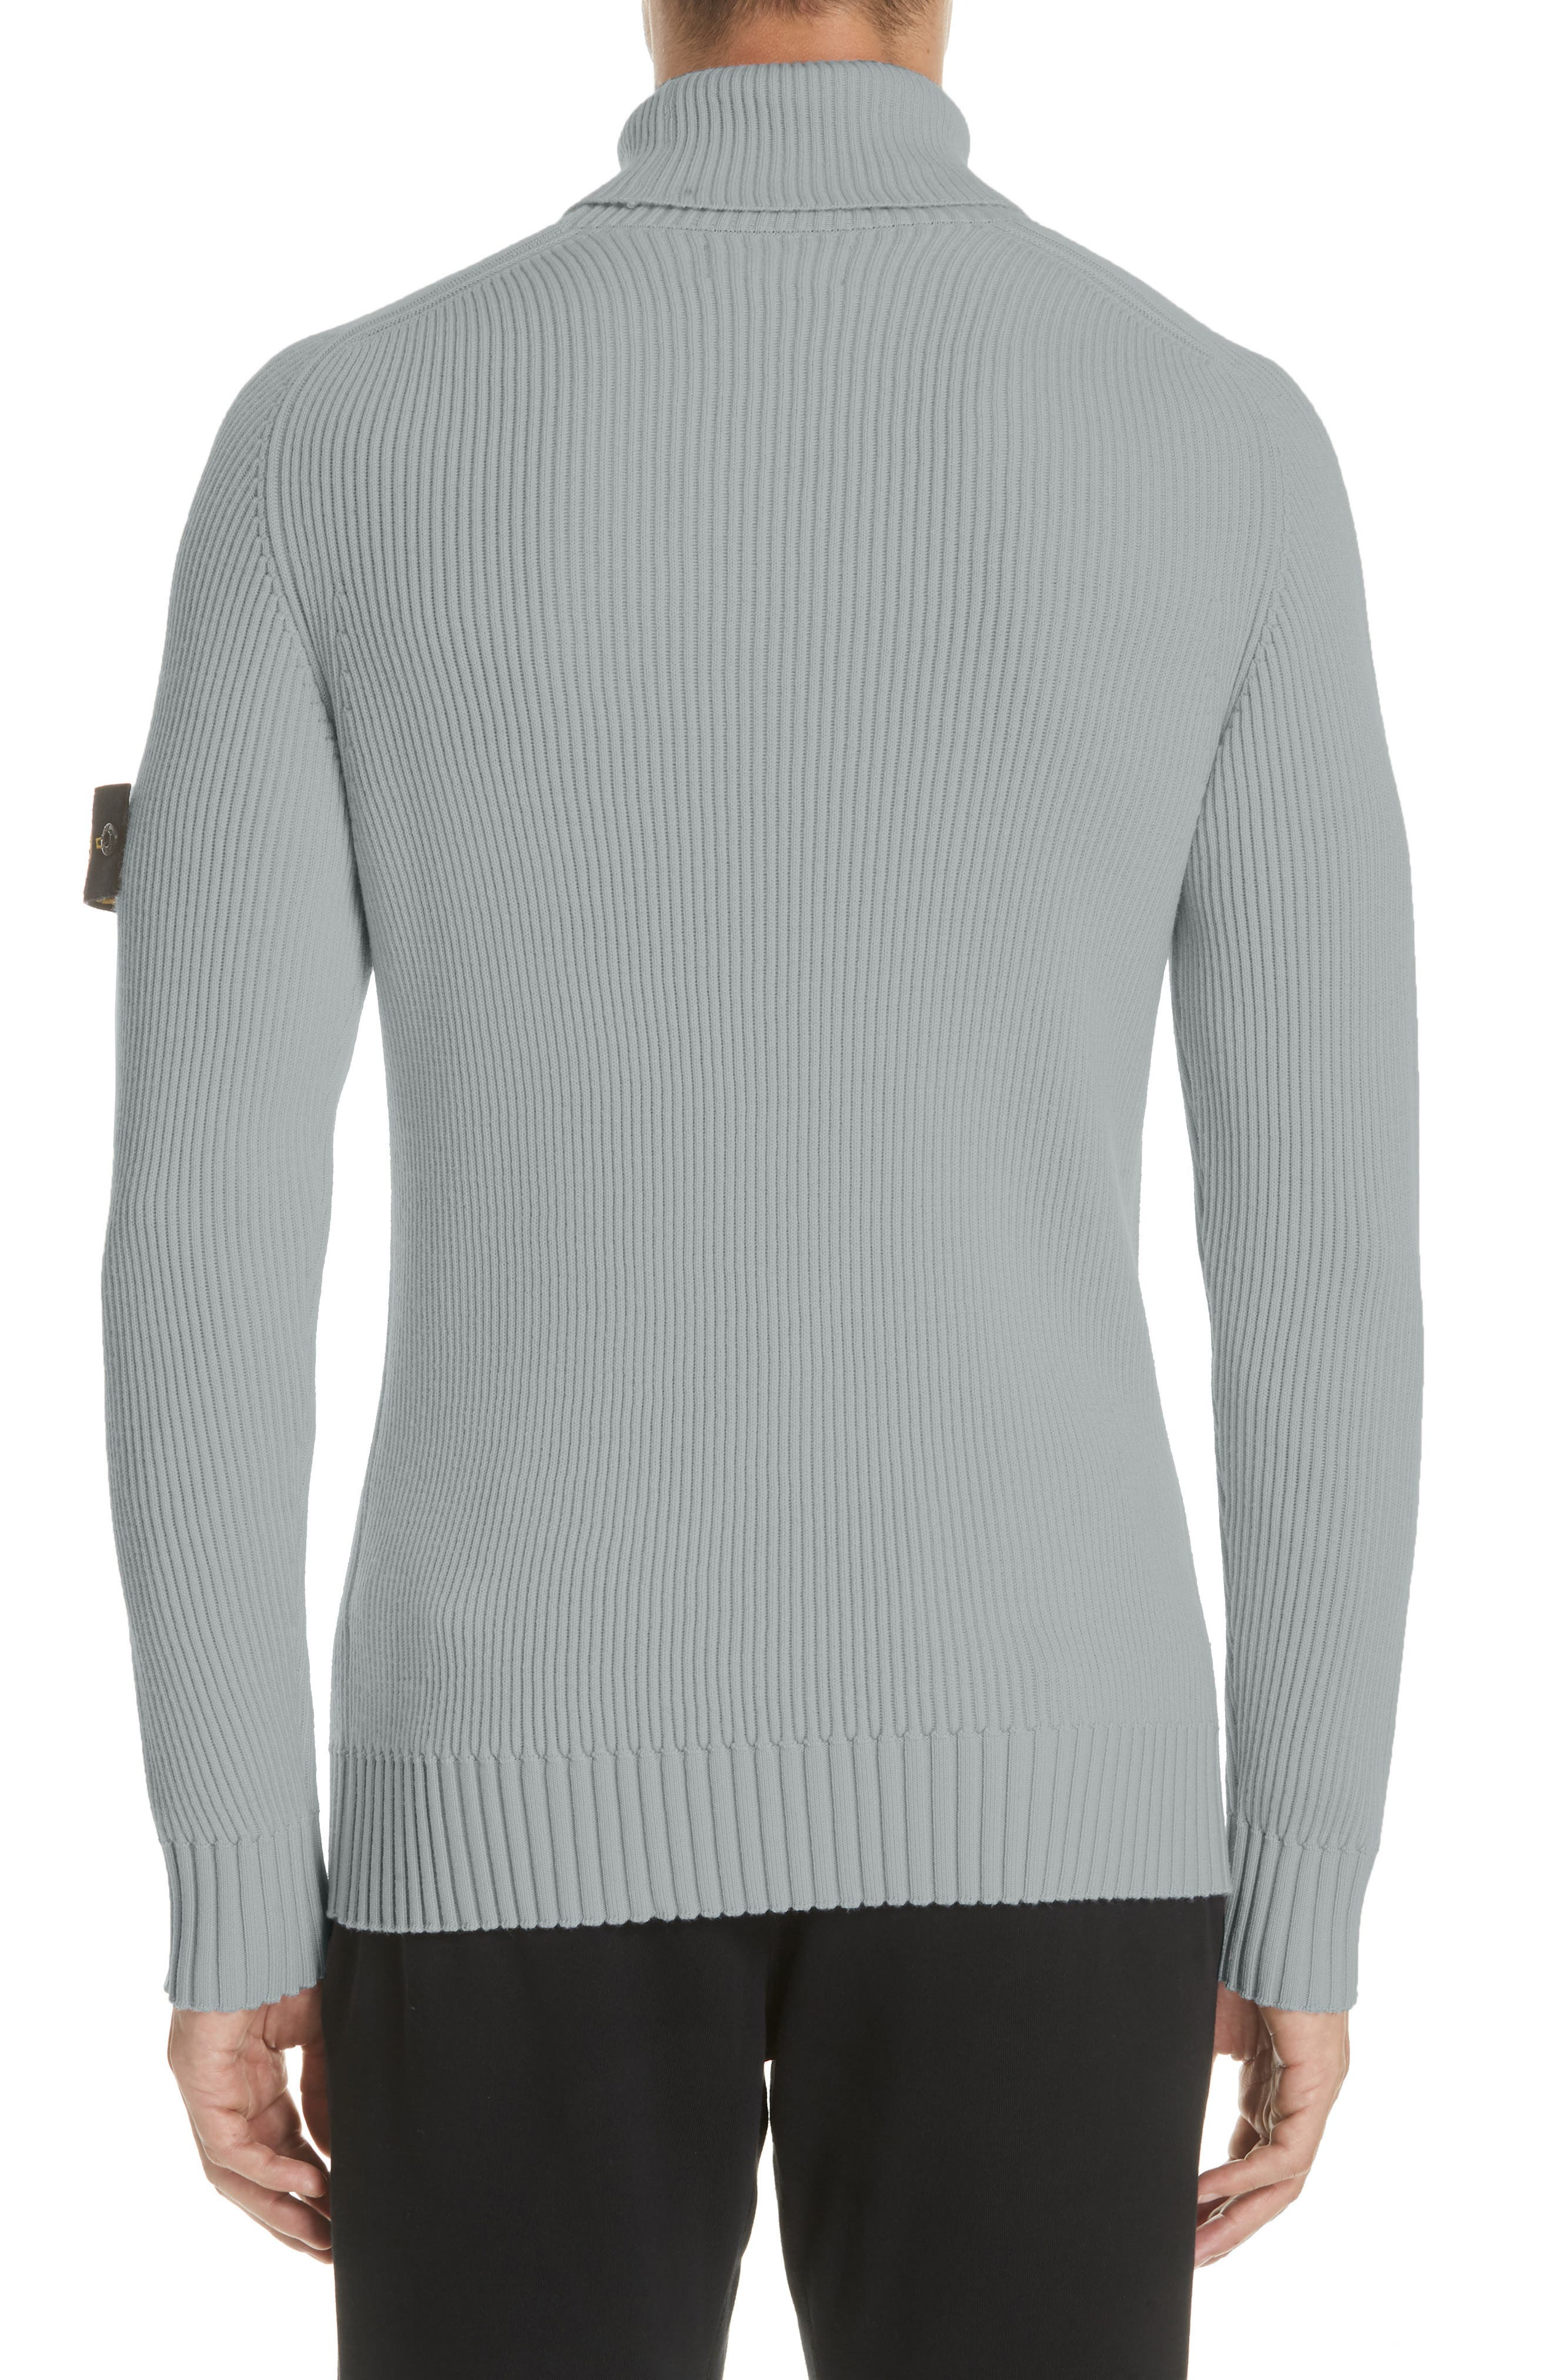 Ribbed Wool Turtleneck Sweater,                             Alternate thumbnail 2, color,                             020